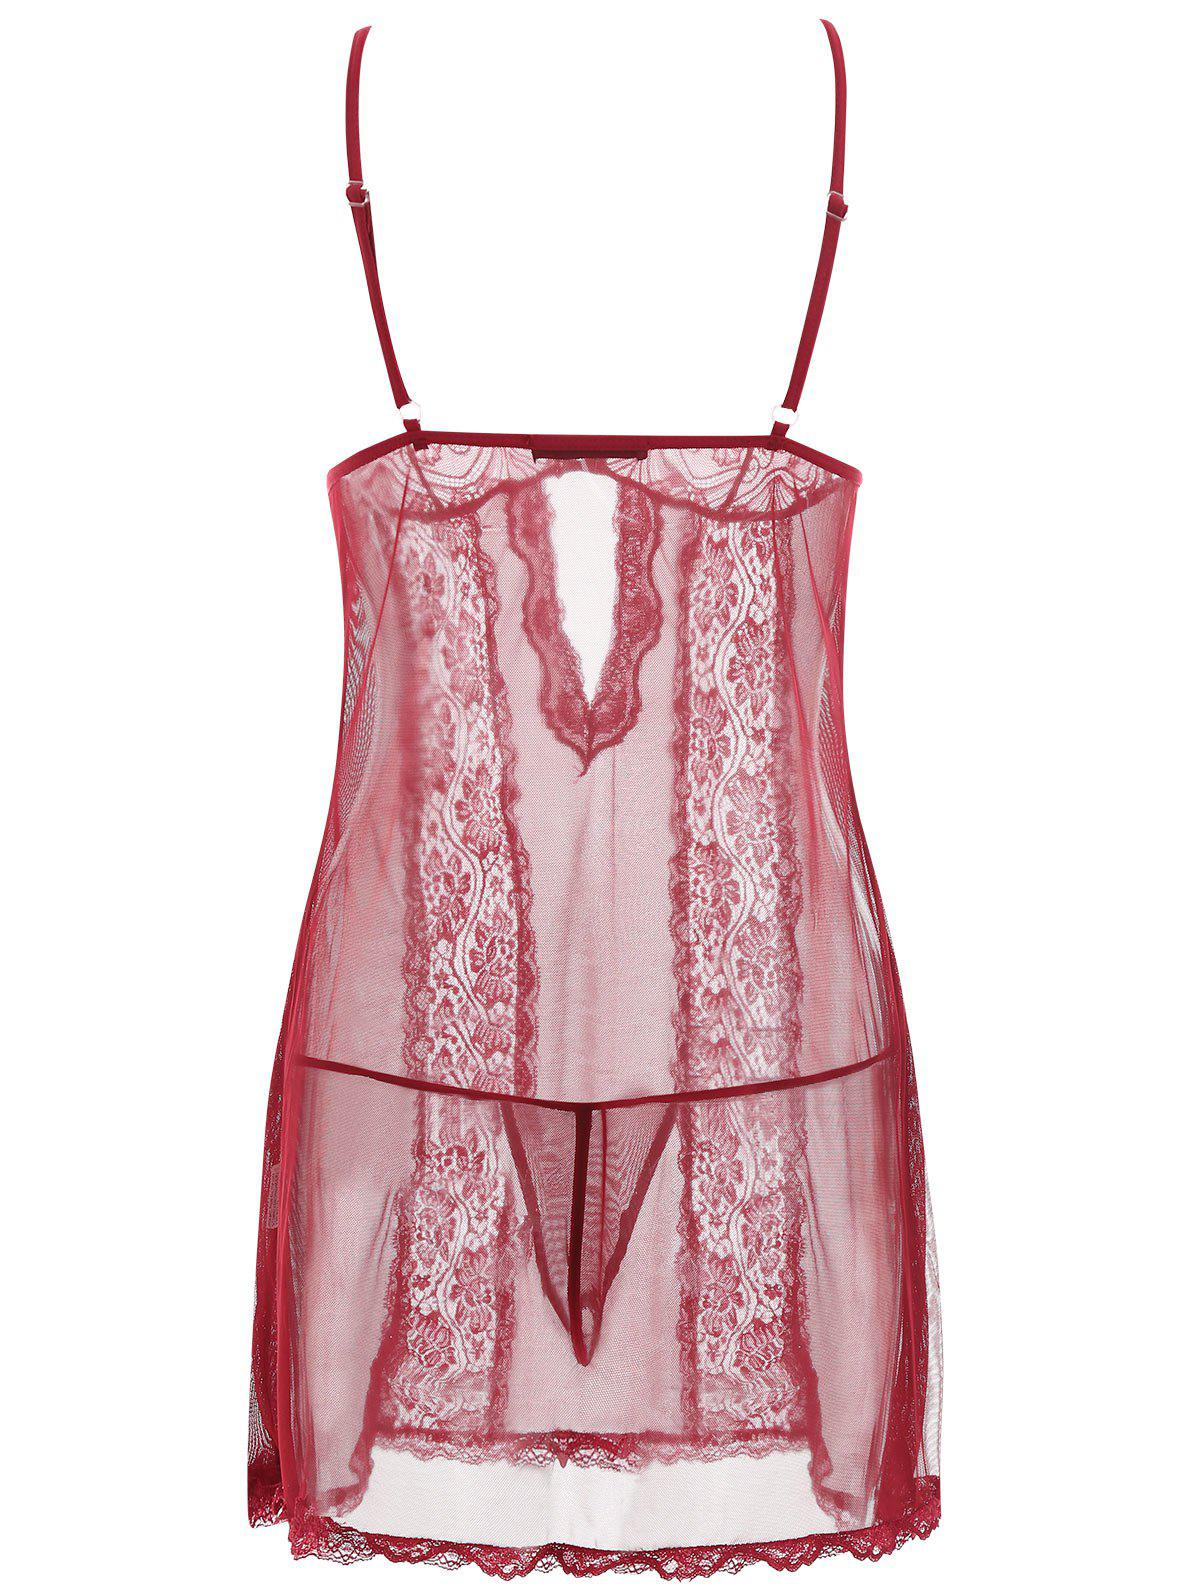 Slip Lace Panel Mesh Sheer Babydoll - Rouge vineux L